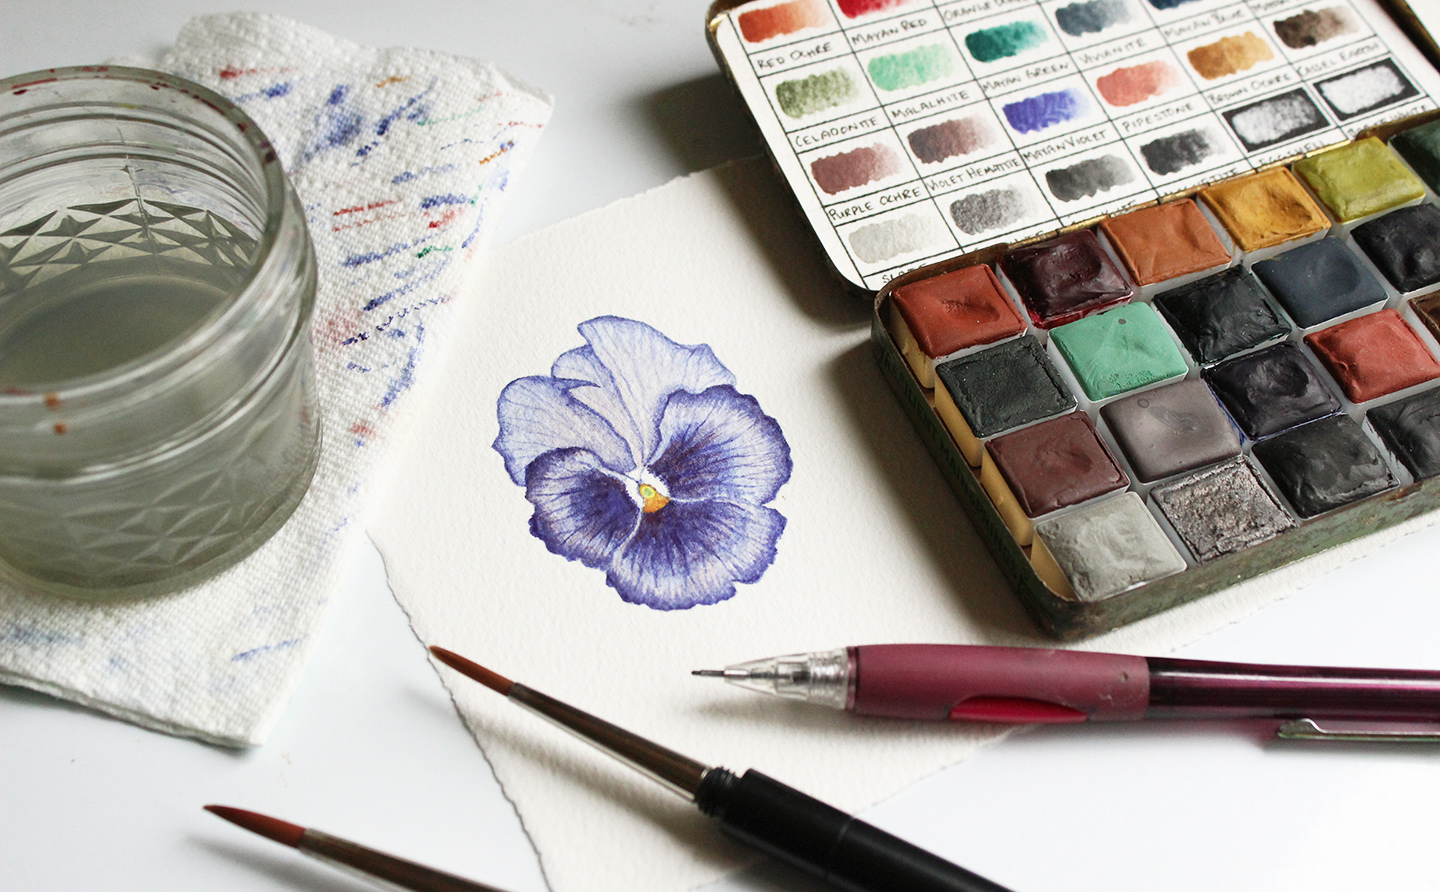 Watercolor Flower | Greenleaf & Blueberry via The Postman's Knock